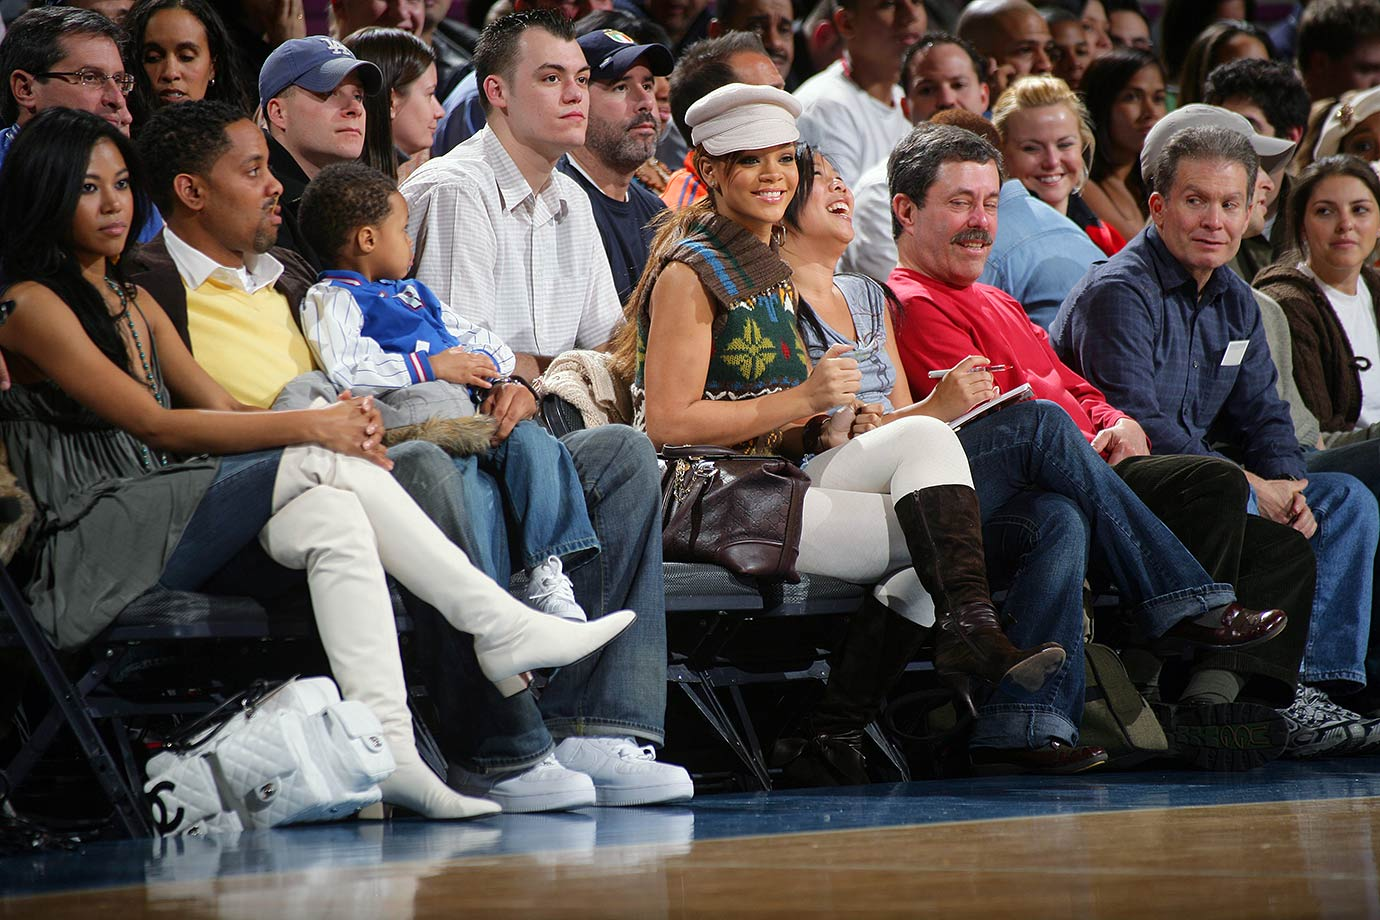 Rihanna attends the New York Knicks game against the Miami Heat on March 19, 2006 at Madison Square Garden in New York City.